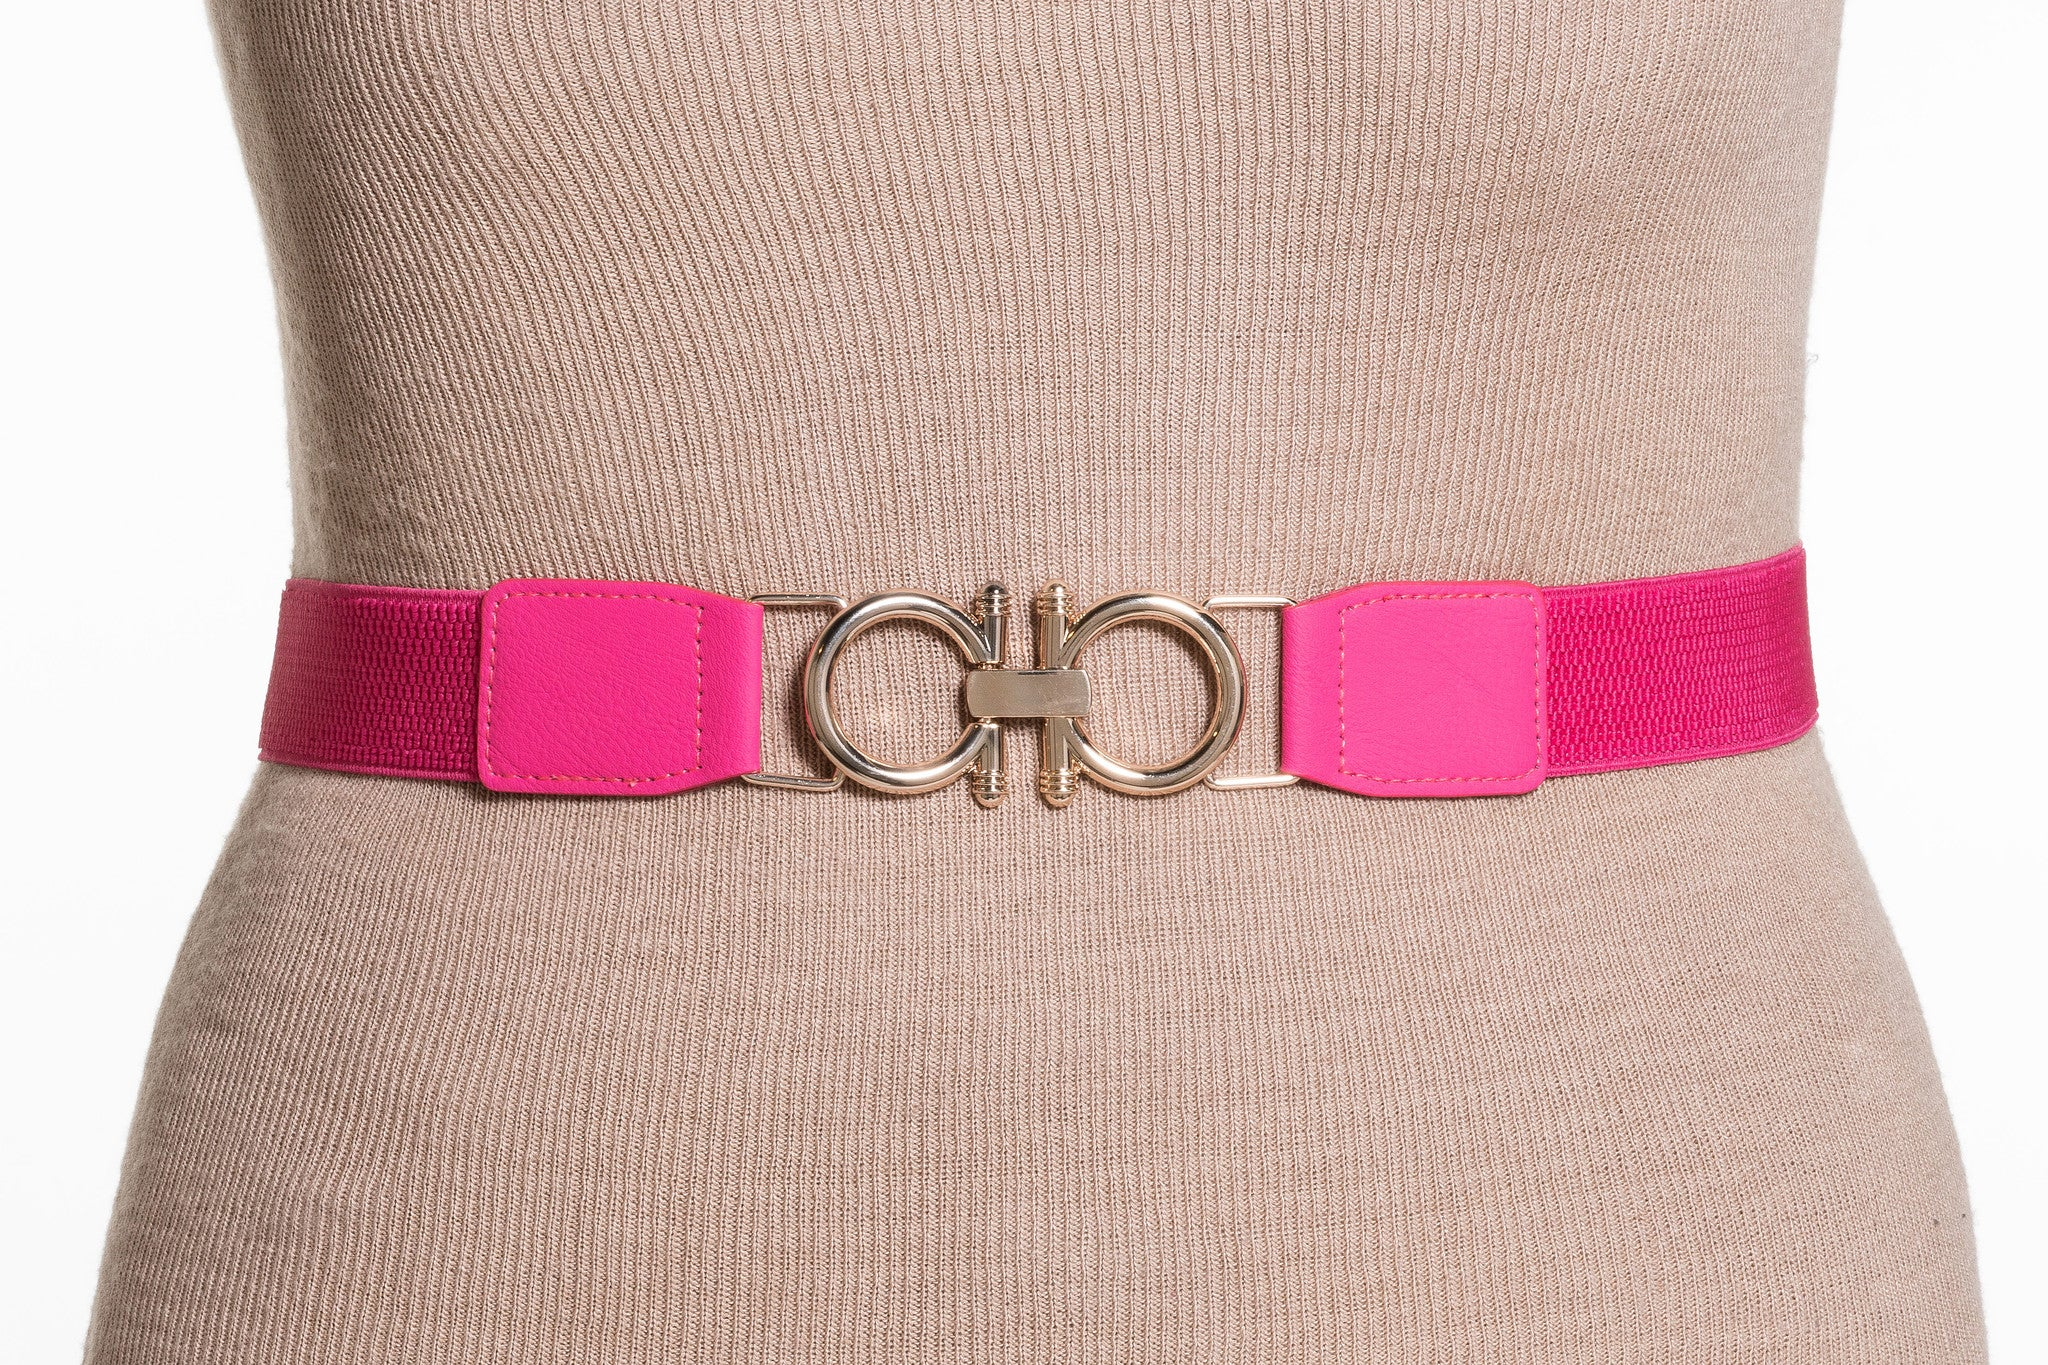 Final Sale Plus Size Elastic Band / Gold Two Ring Lock Belt in Pink